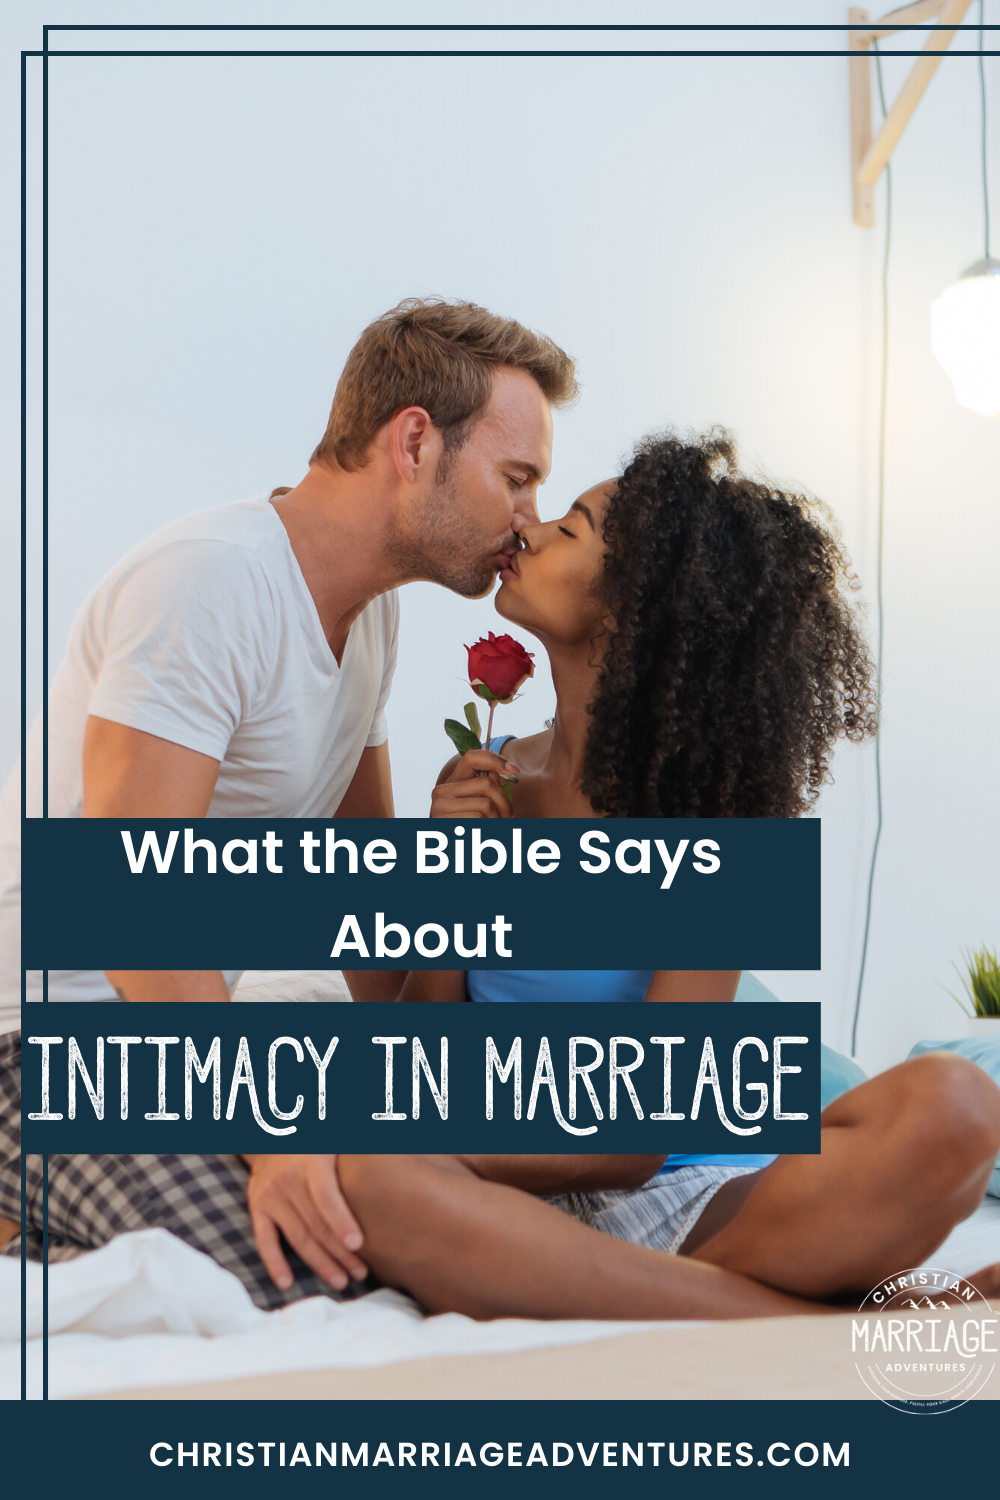 What the Bible Says About Intimacy in Marriage